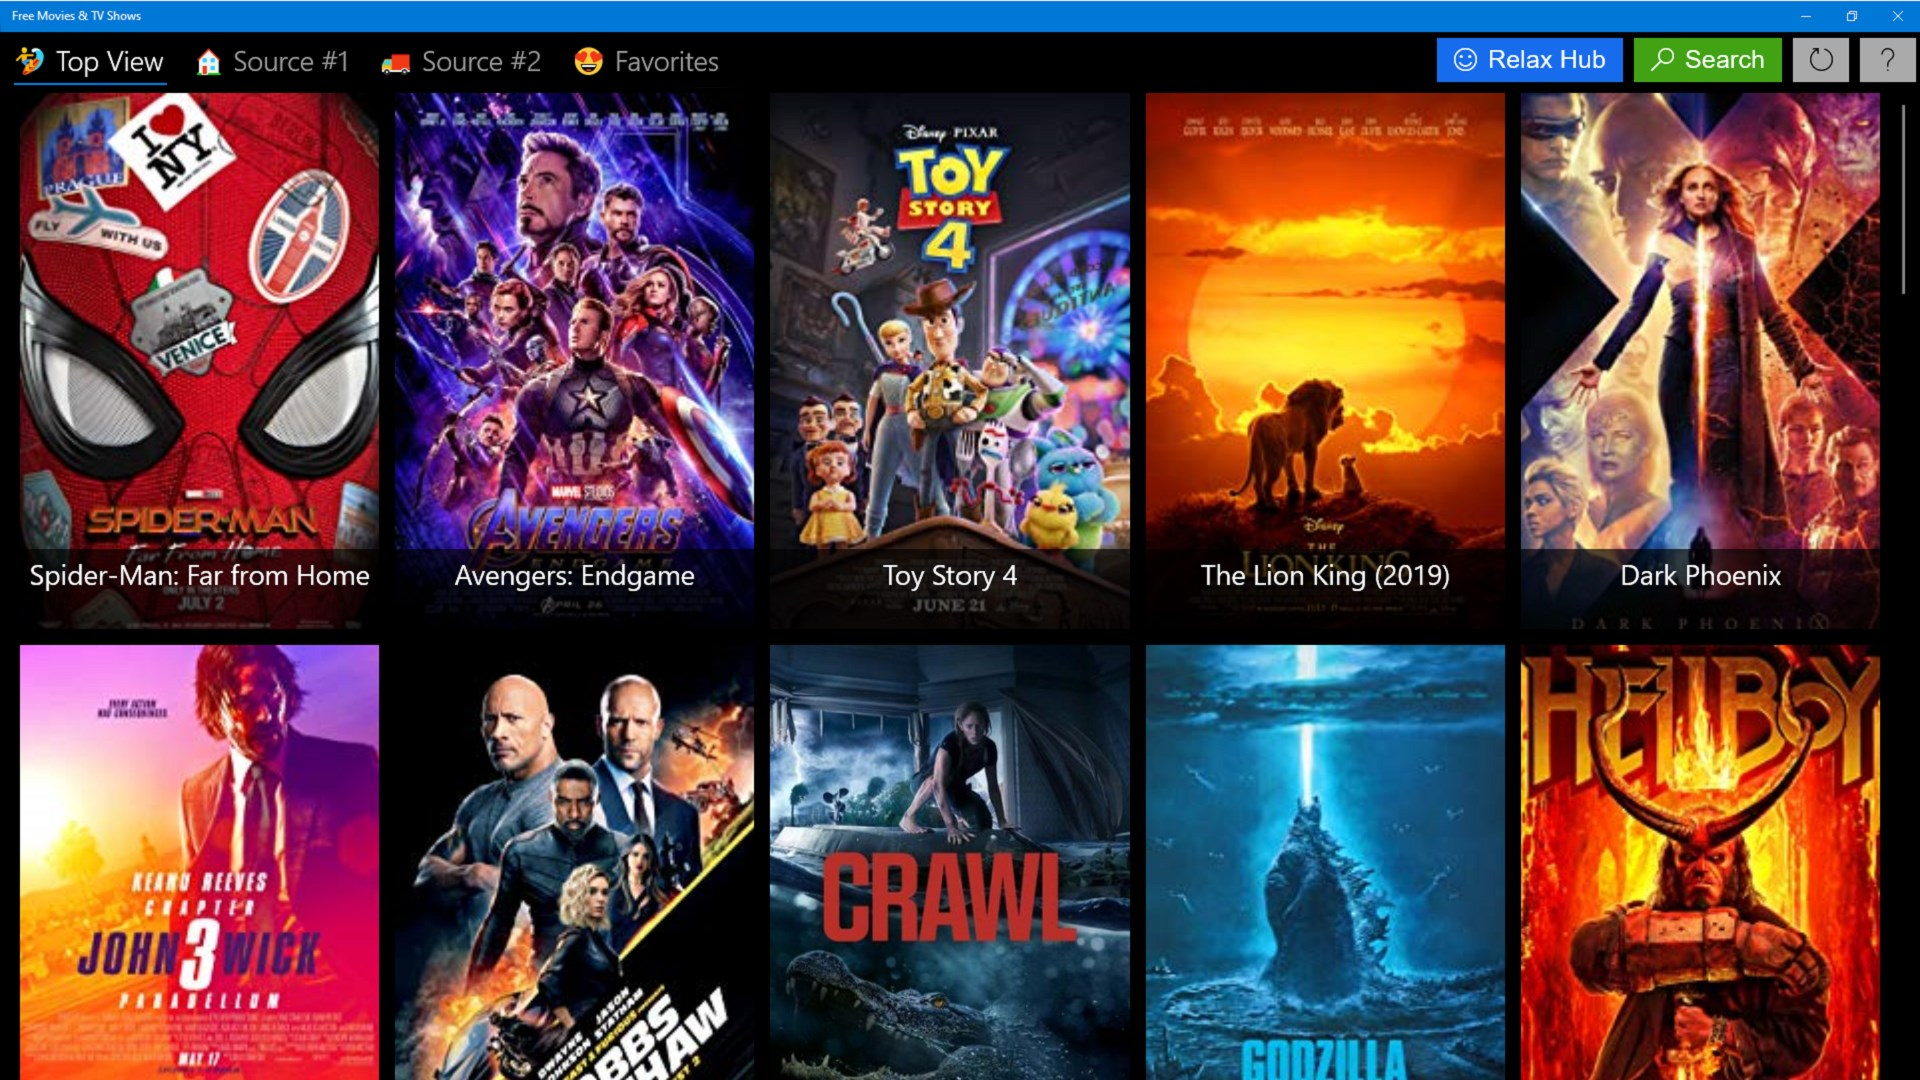 Get Free Movies & TV Shows - Microsoft Store